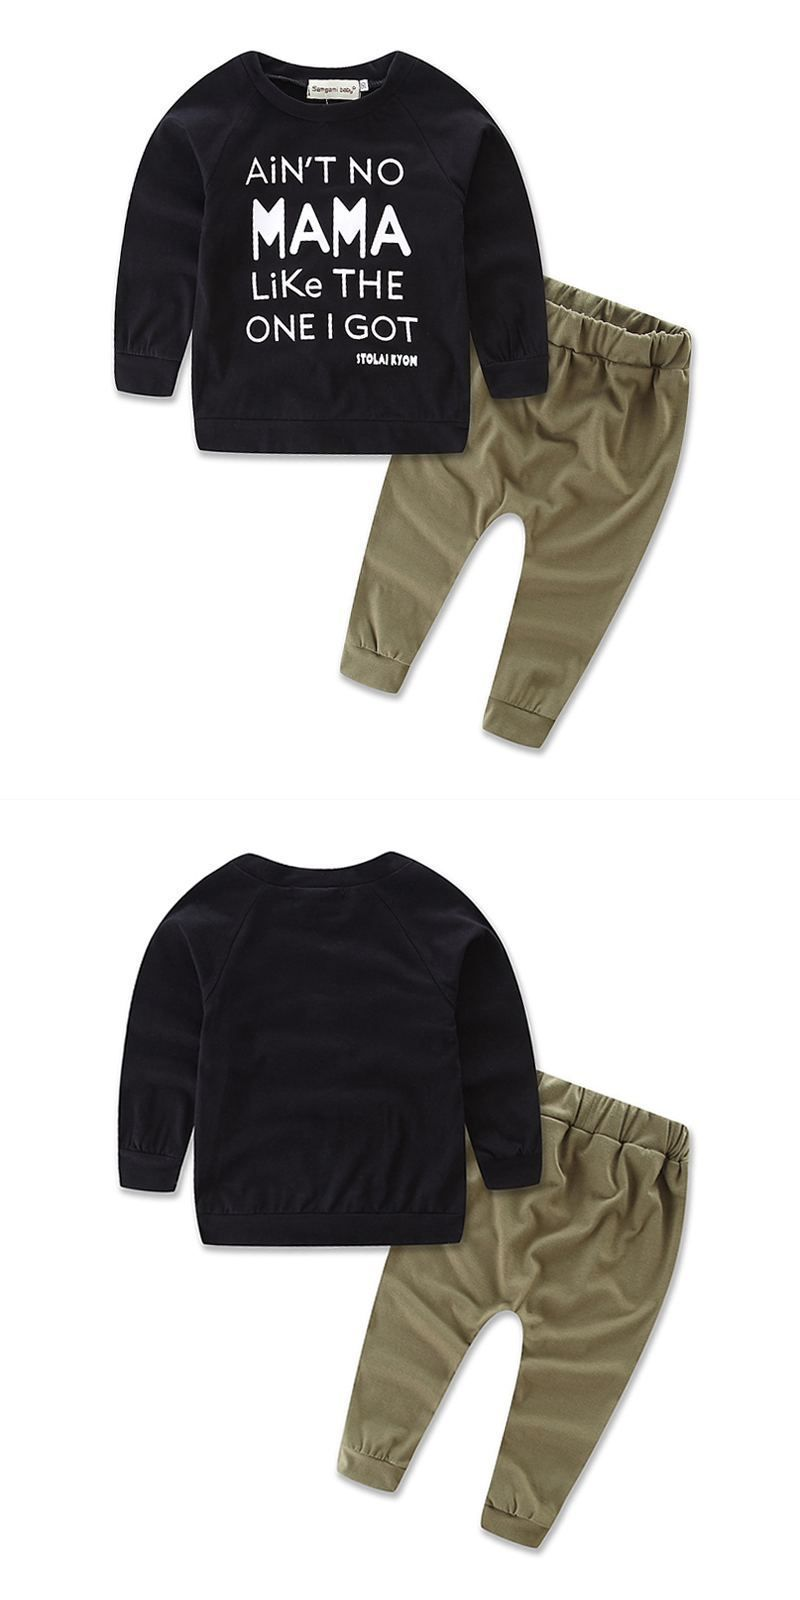 2799bf2257495 Boys Cotton 2 Pcs Set Letter Printed Long Sleeves Tops And Pants ...